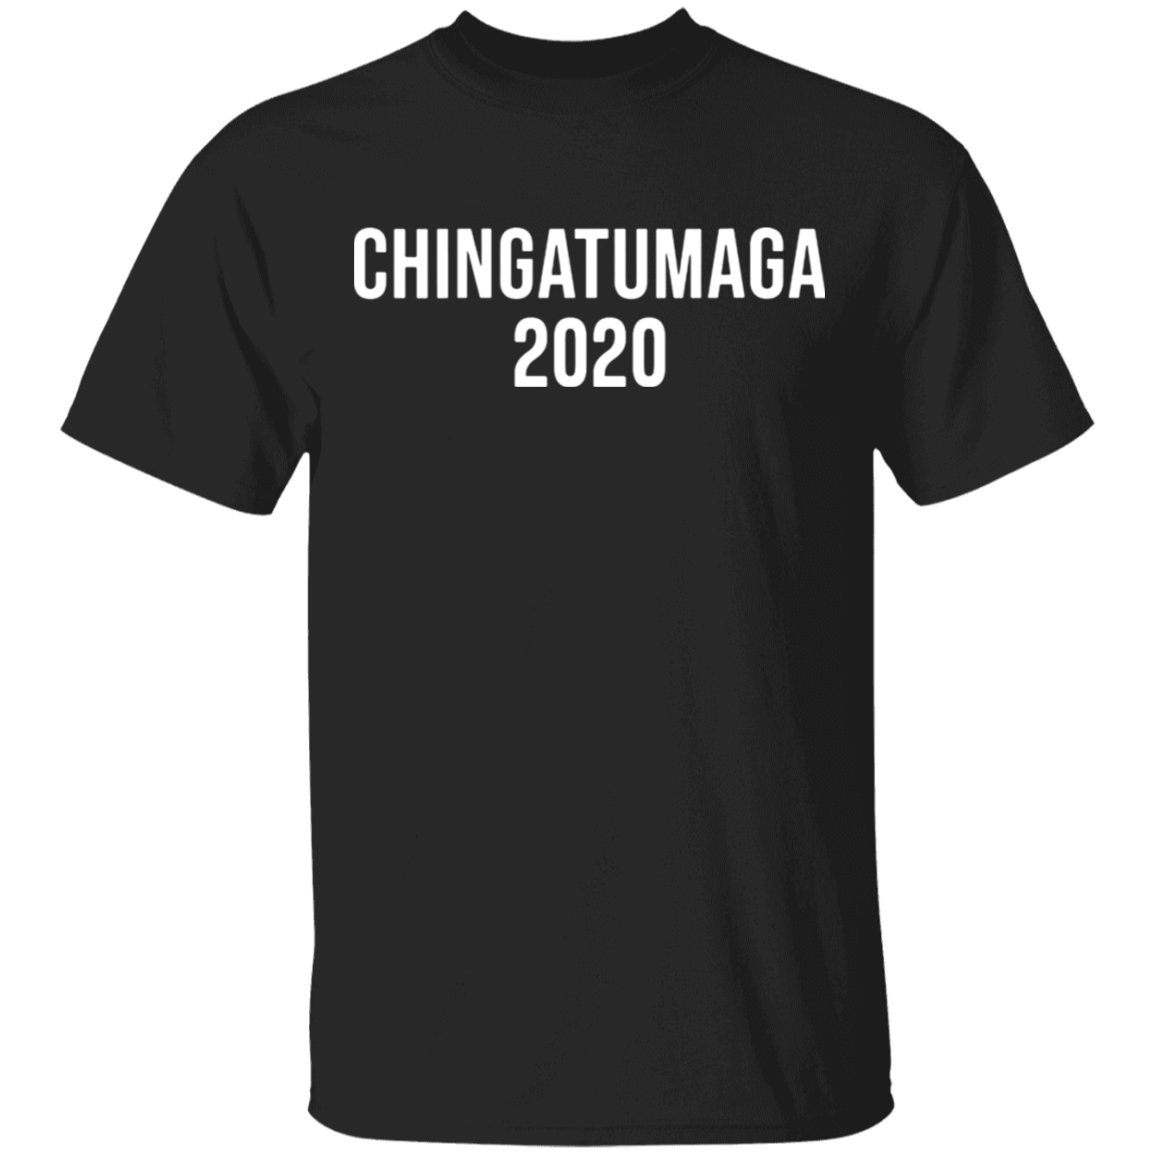 Chinga Tu Maga T-Shirt #Chingatumaga 2020 Classic Shirt Fuck Donald Trump Funny Gifts For Dad